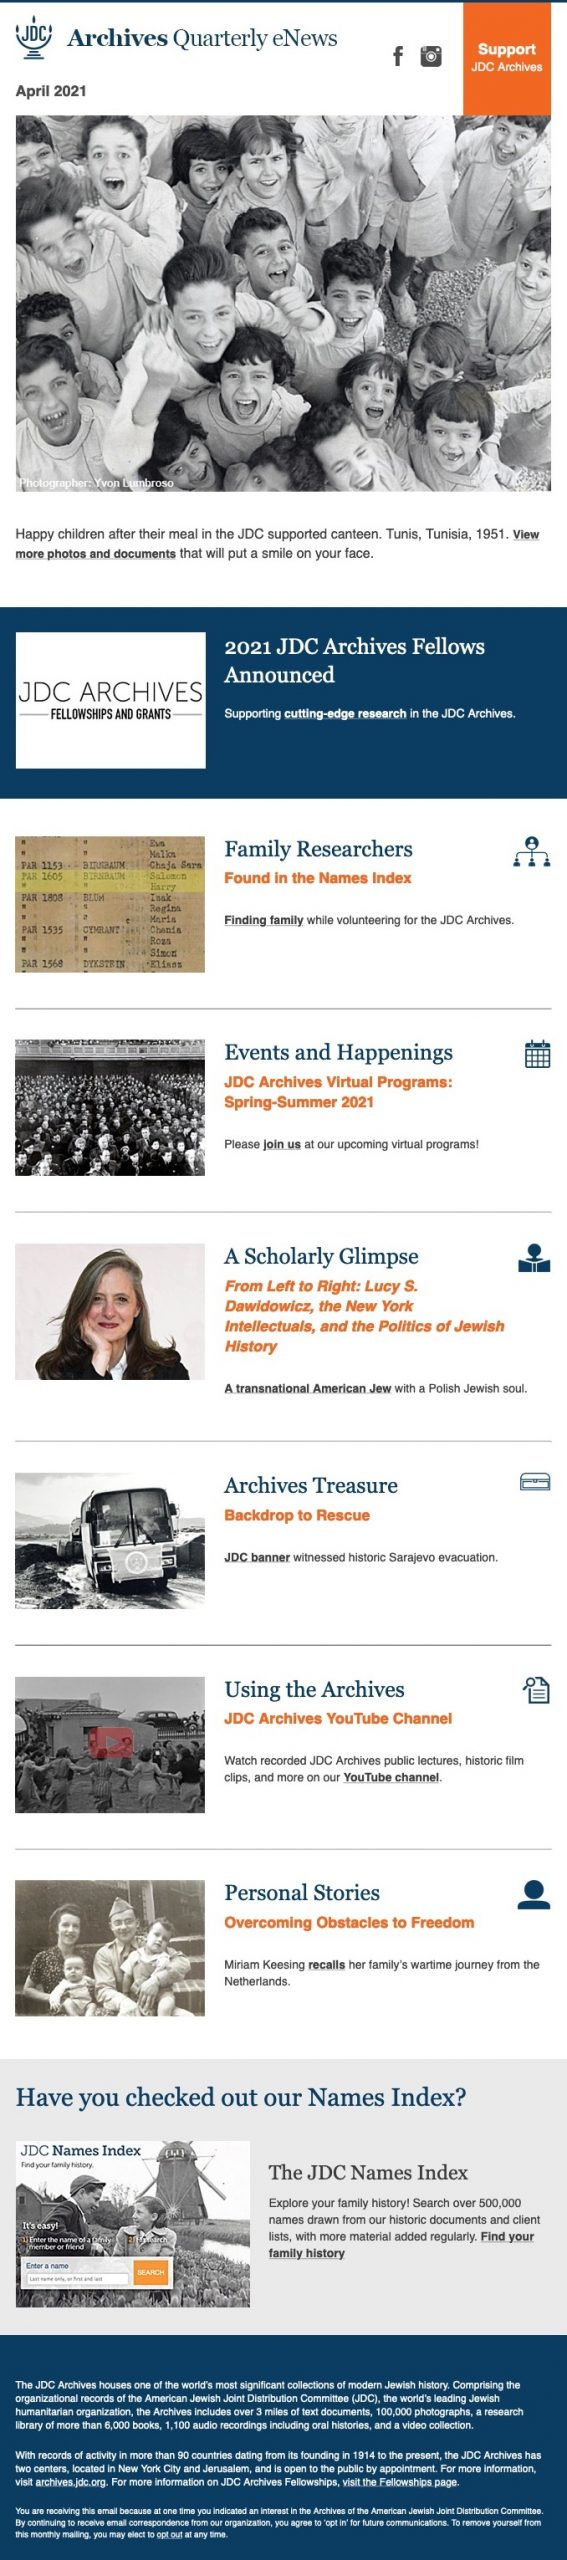 2021 Fellowships Announced, Finding Family in the Archives, Review of Lucy Dawidowicz Biography